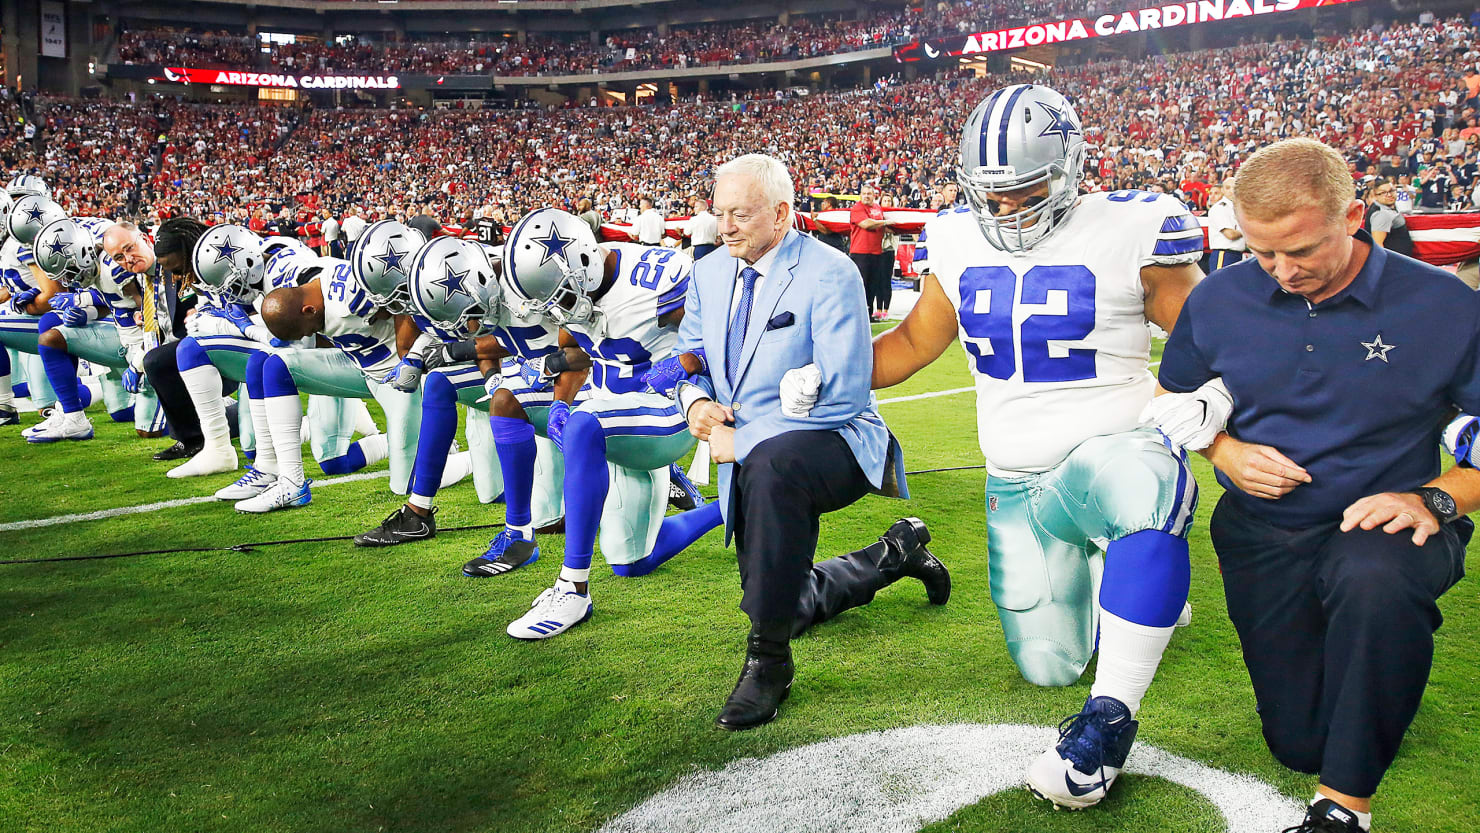 Dallas Cowboys owner Jerry Jones and head coach Jason Garrett kneel with their team